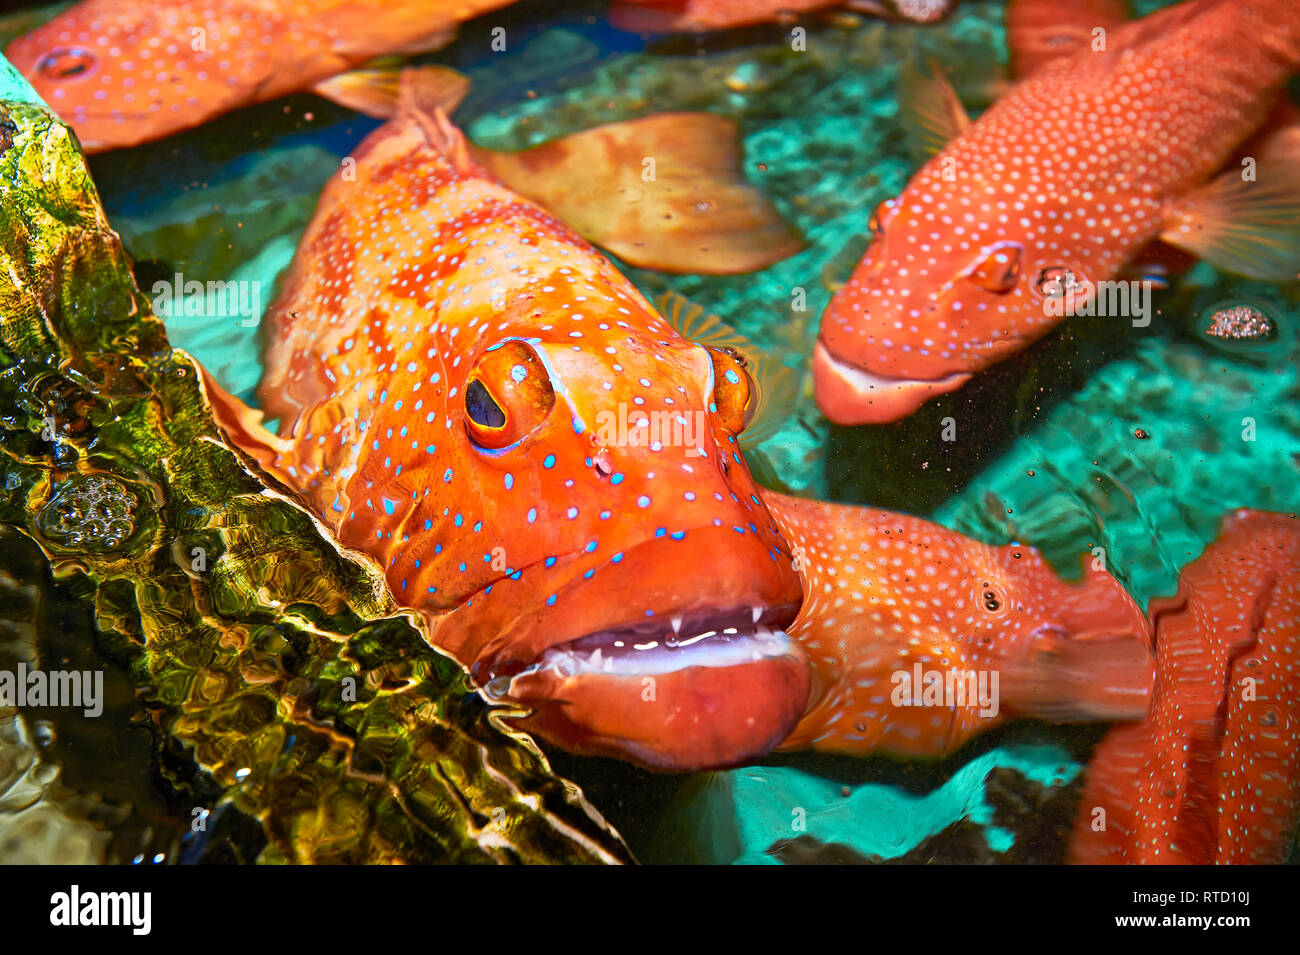 Red Snapper fish (Lapu-Lapu) caught around Cuyo island, Palawan, Philippines, transported to Manila, to be sold expensive as live fish to restaurants Stock Photo